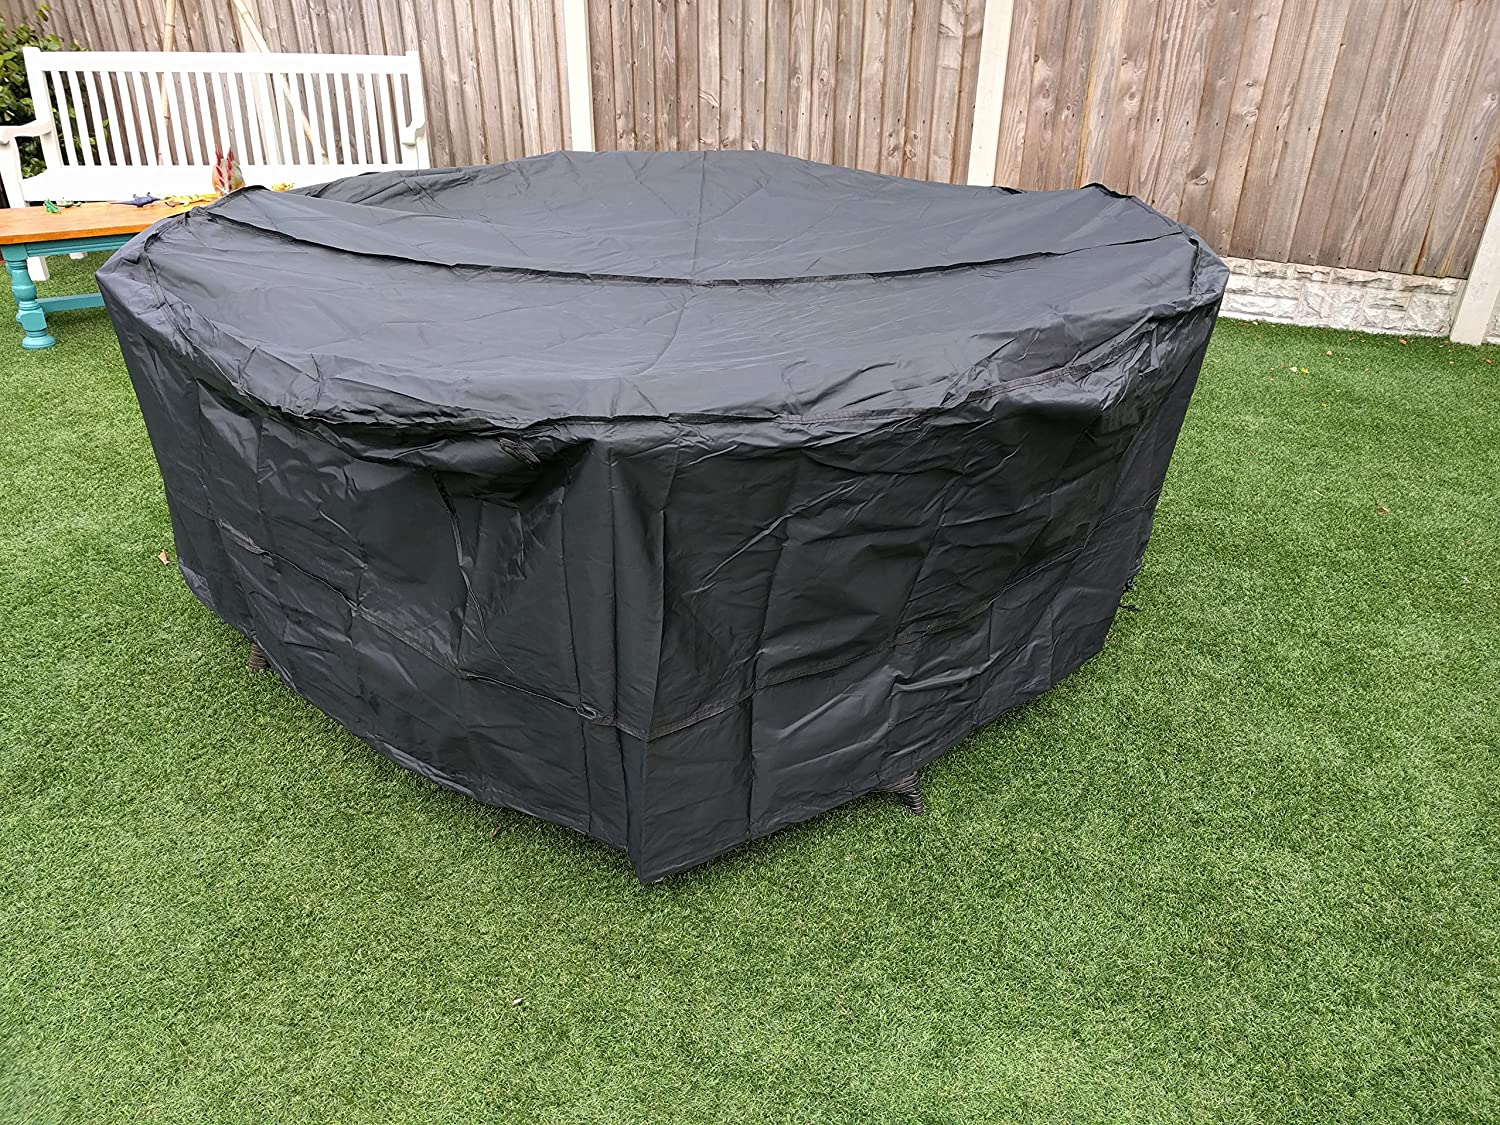 Speedwellstar Round Garden Table Hot Tub Cover Furniture Patio Fitted  Circular Drawstring 7-7 Seat Dining Set Large Breathable Quality